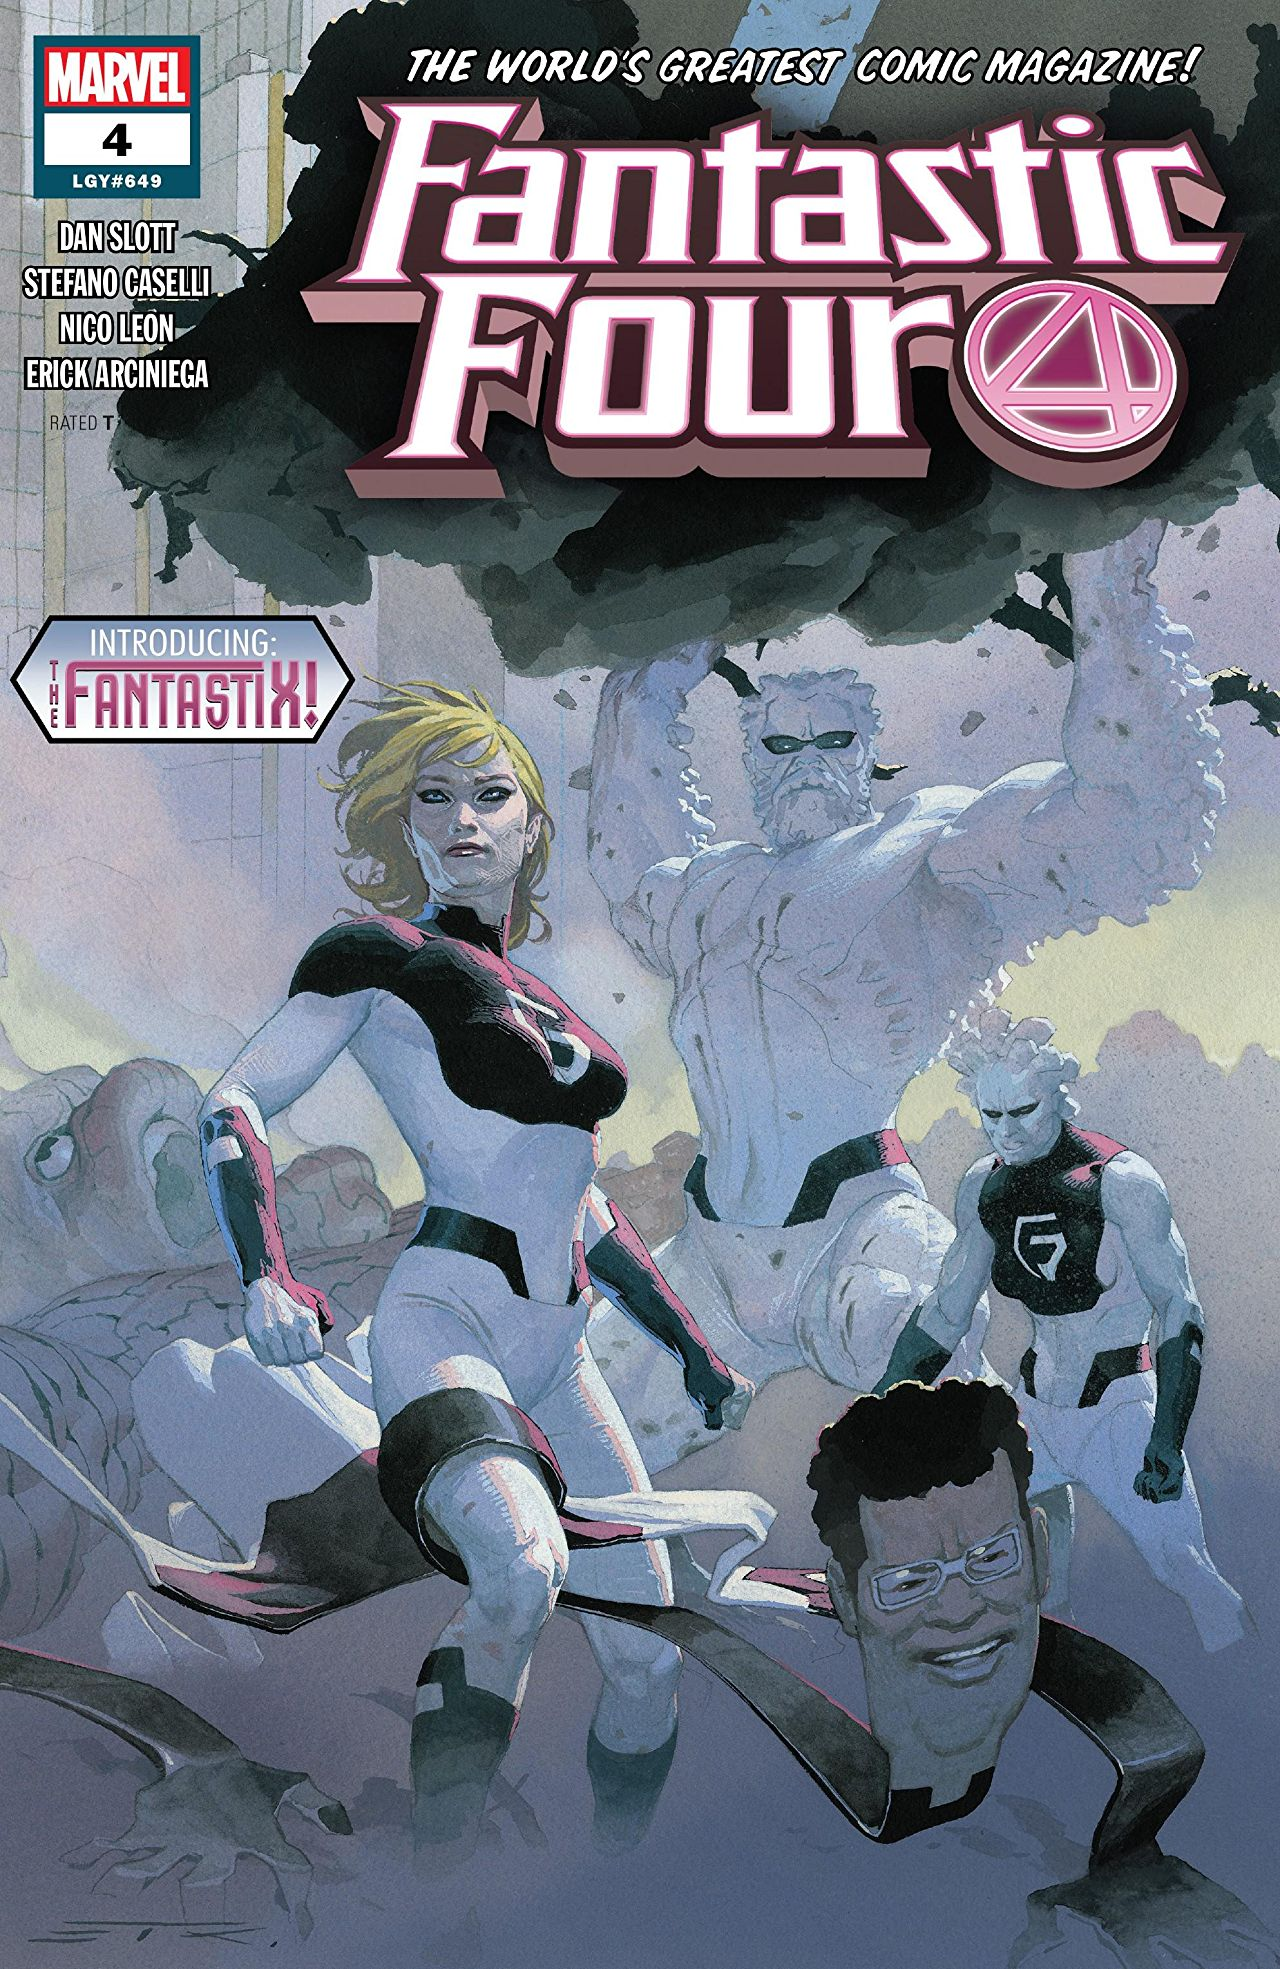 Fantastic Four (Vol. 6)  #4